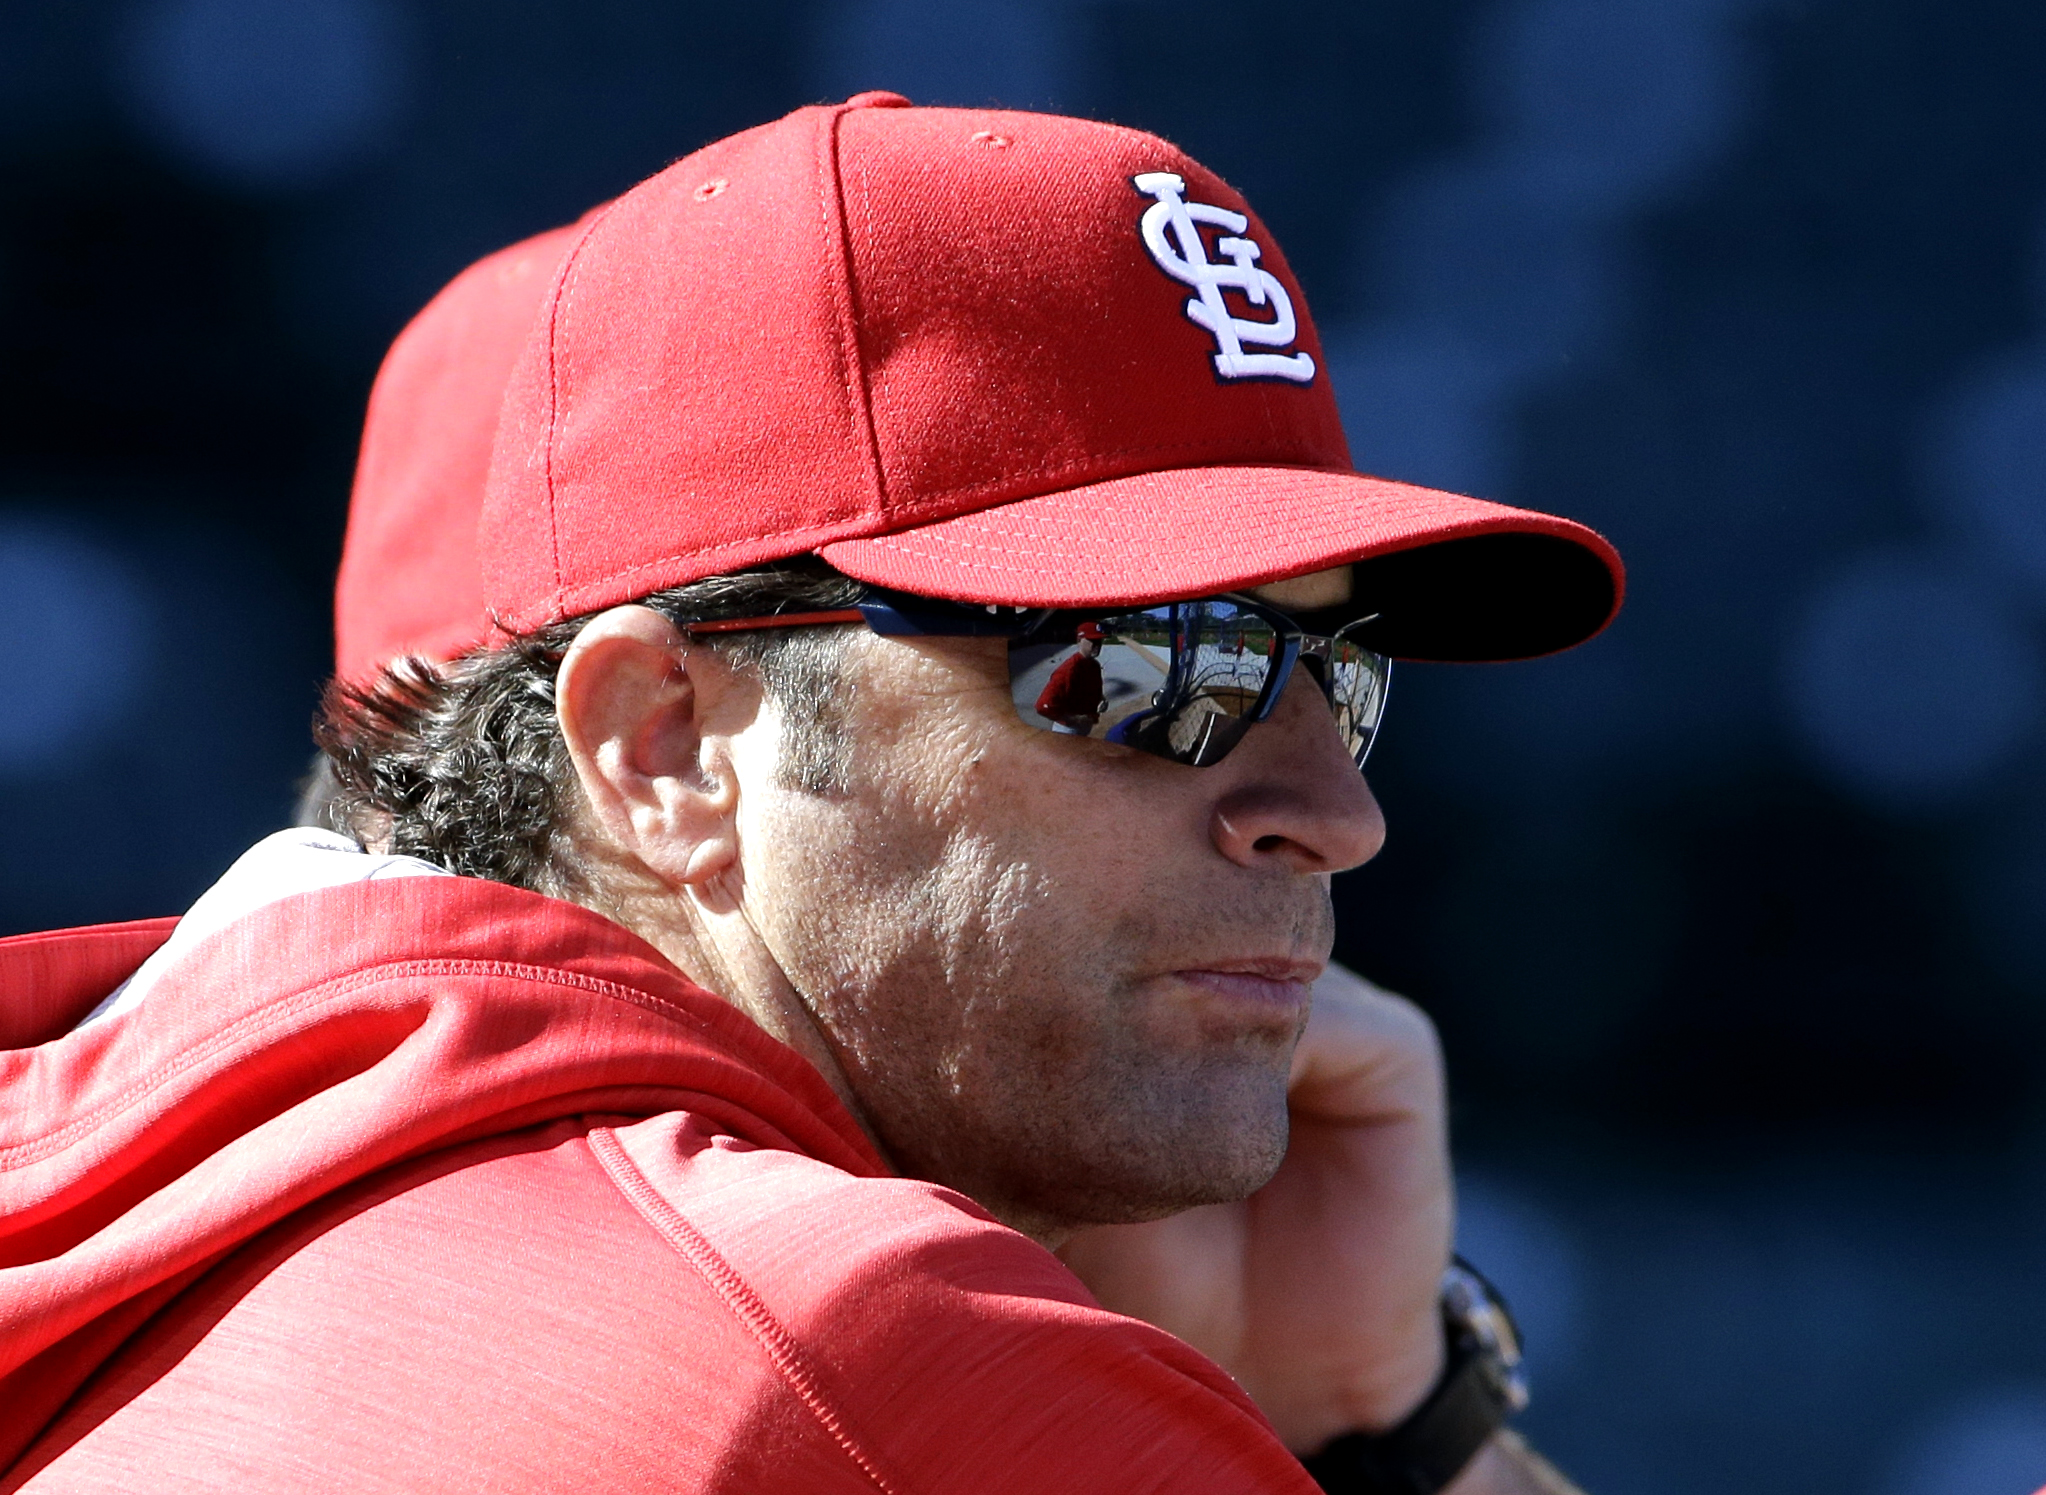 St. Louis Cardinals manager Mike Matheny watches his team during an NLDS baseball practice on Sunday, Oct. 11, 2015, in Chicago. The Cardinals are to face the Chicago Cubs in Game 3 of the National League Division Series on Monday. (AP Photo/Nam Y. Huh)